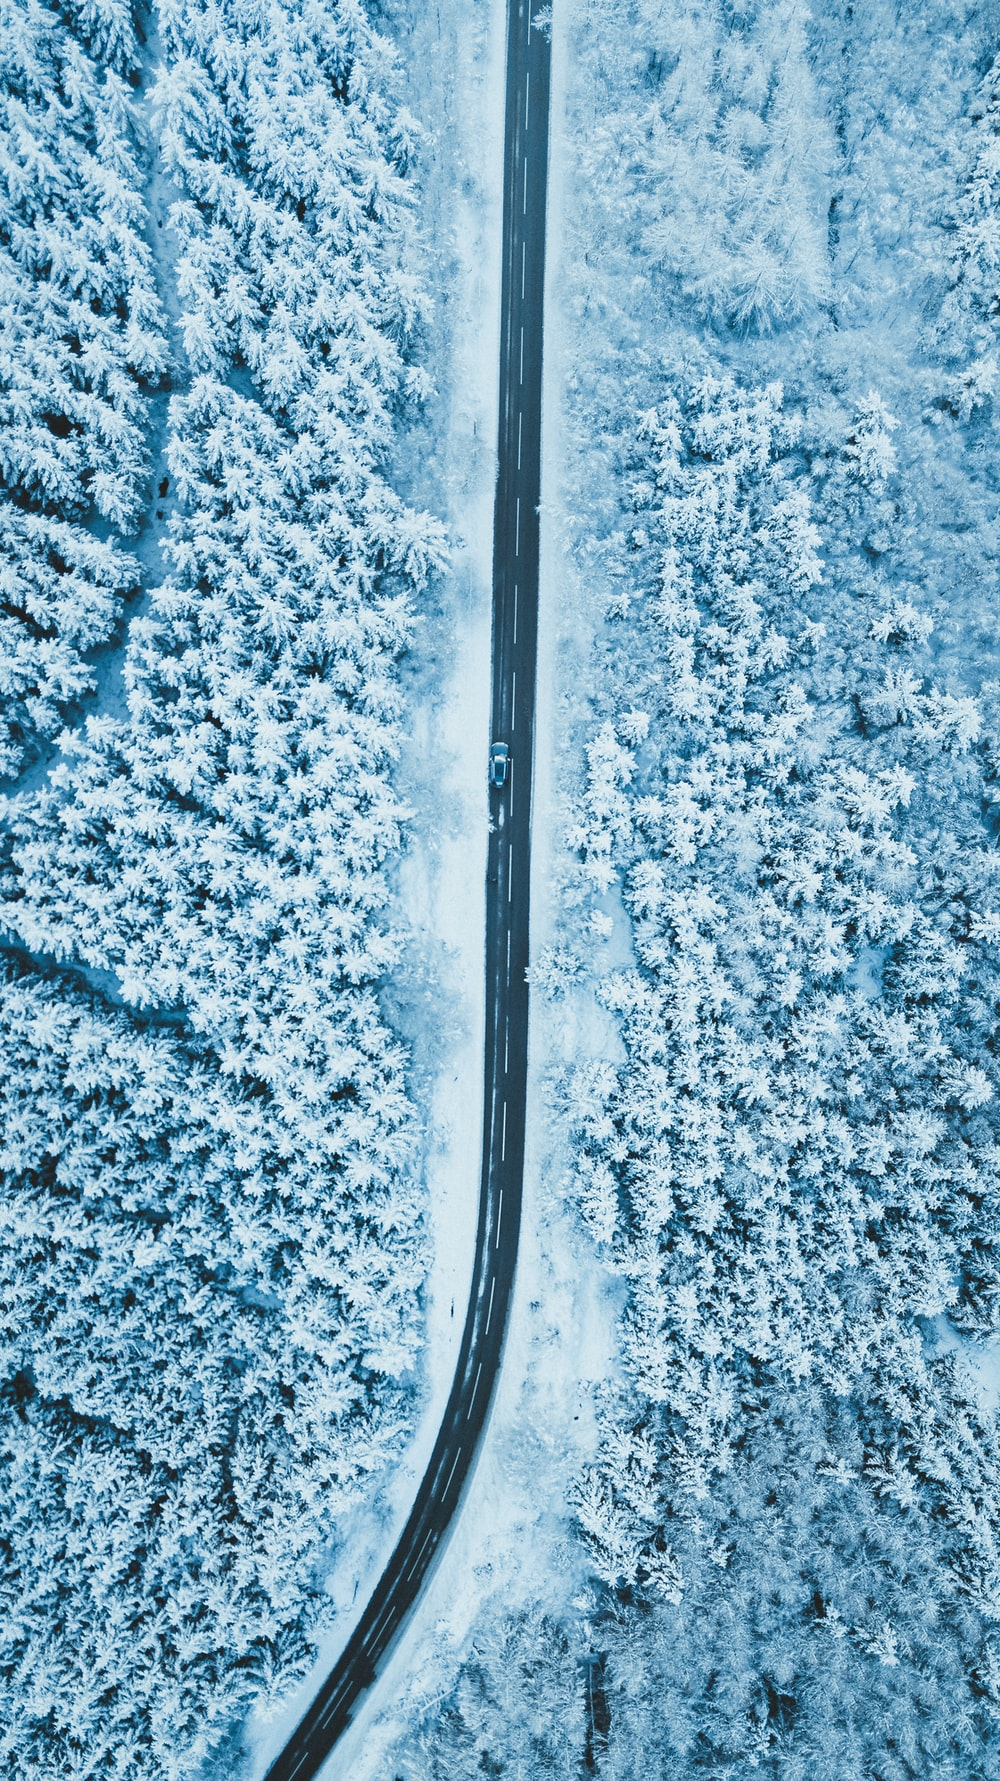 gray road surrounded by trees covered with snow